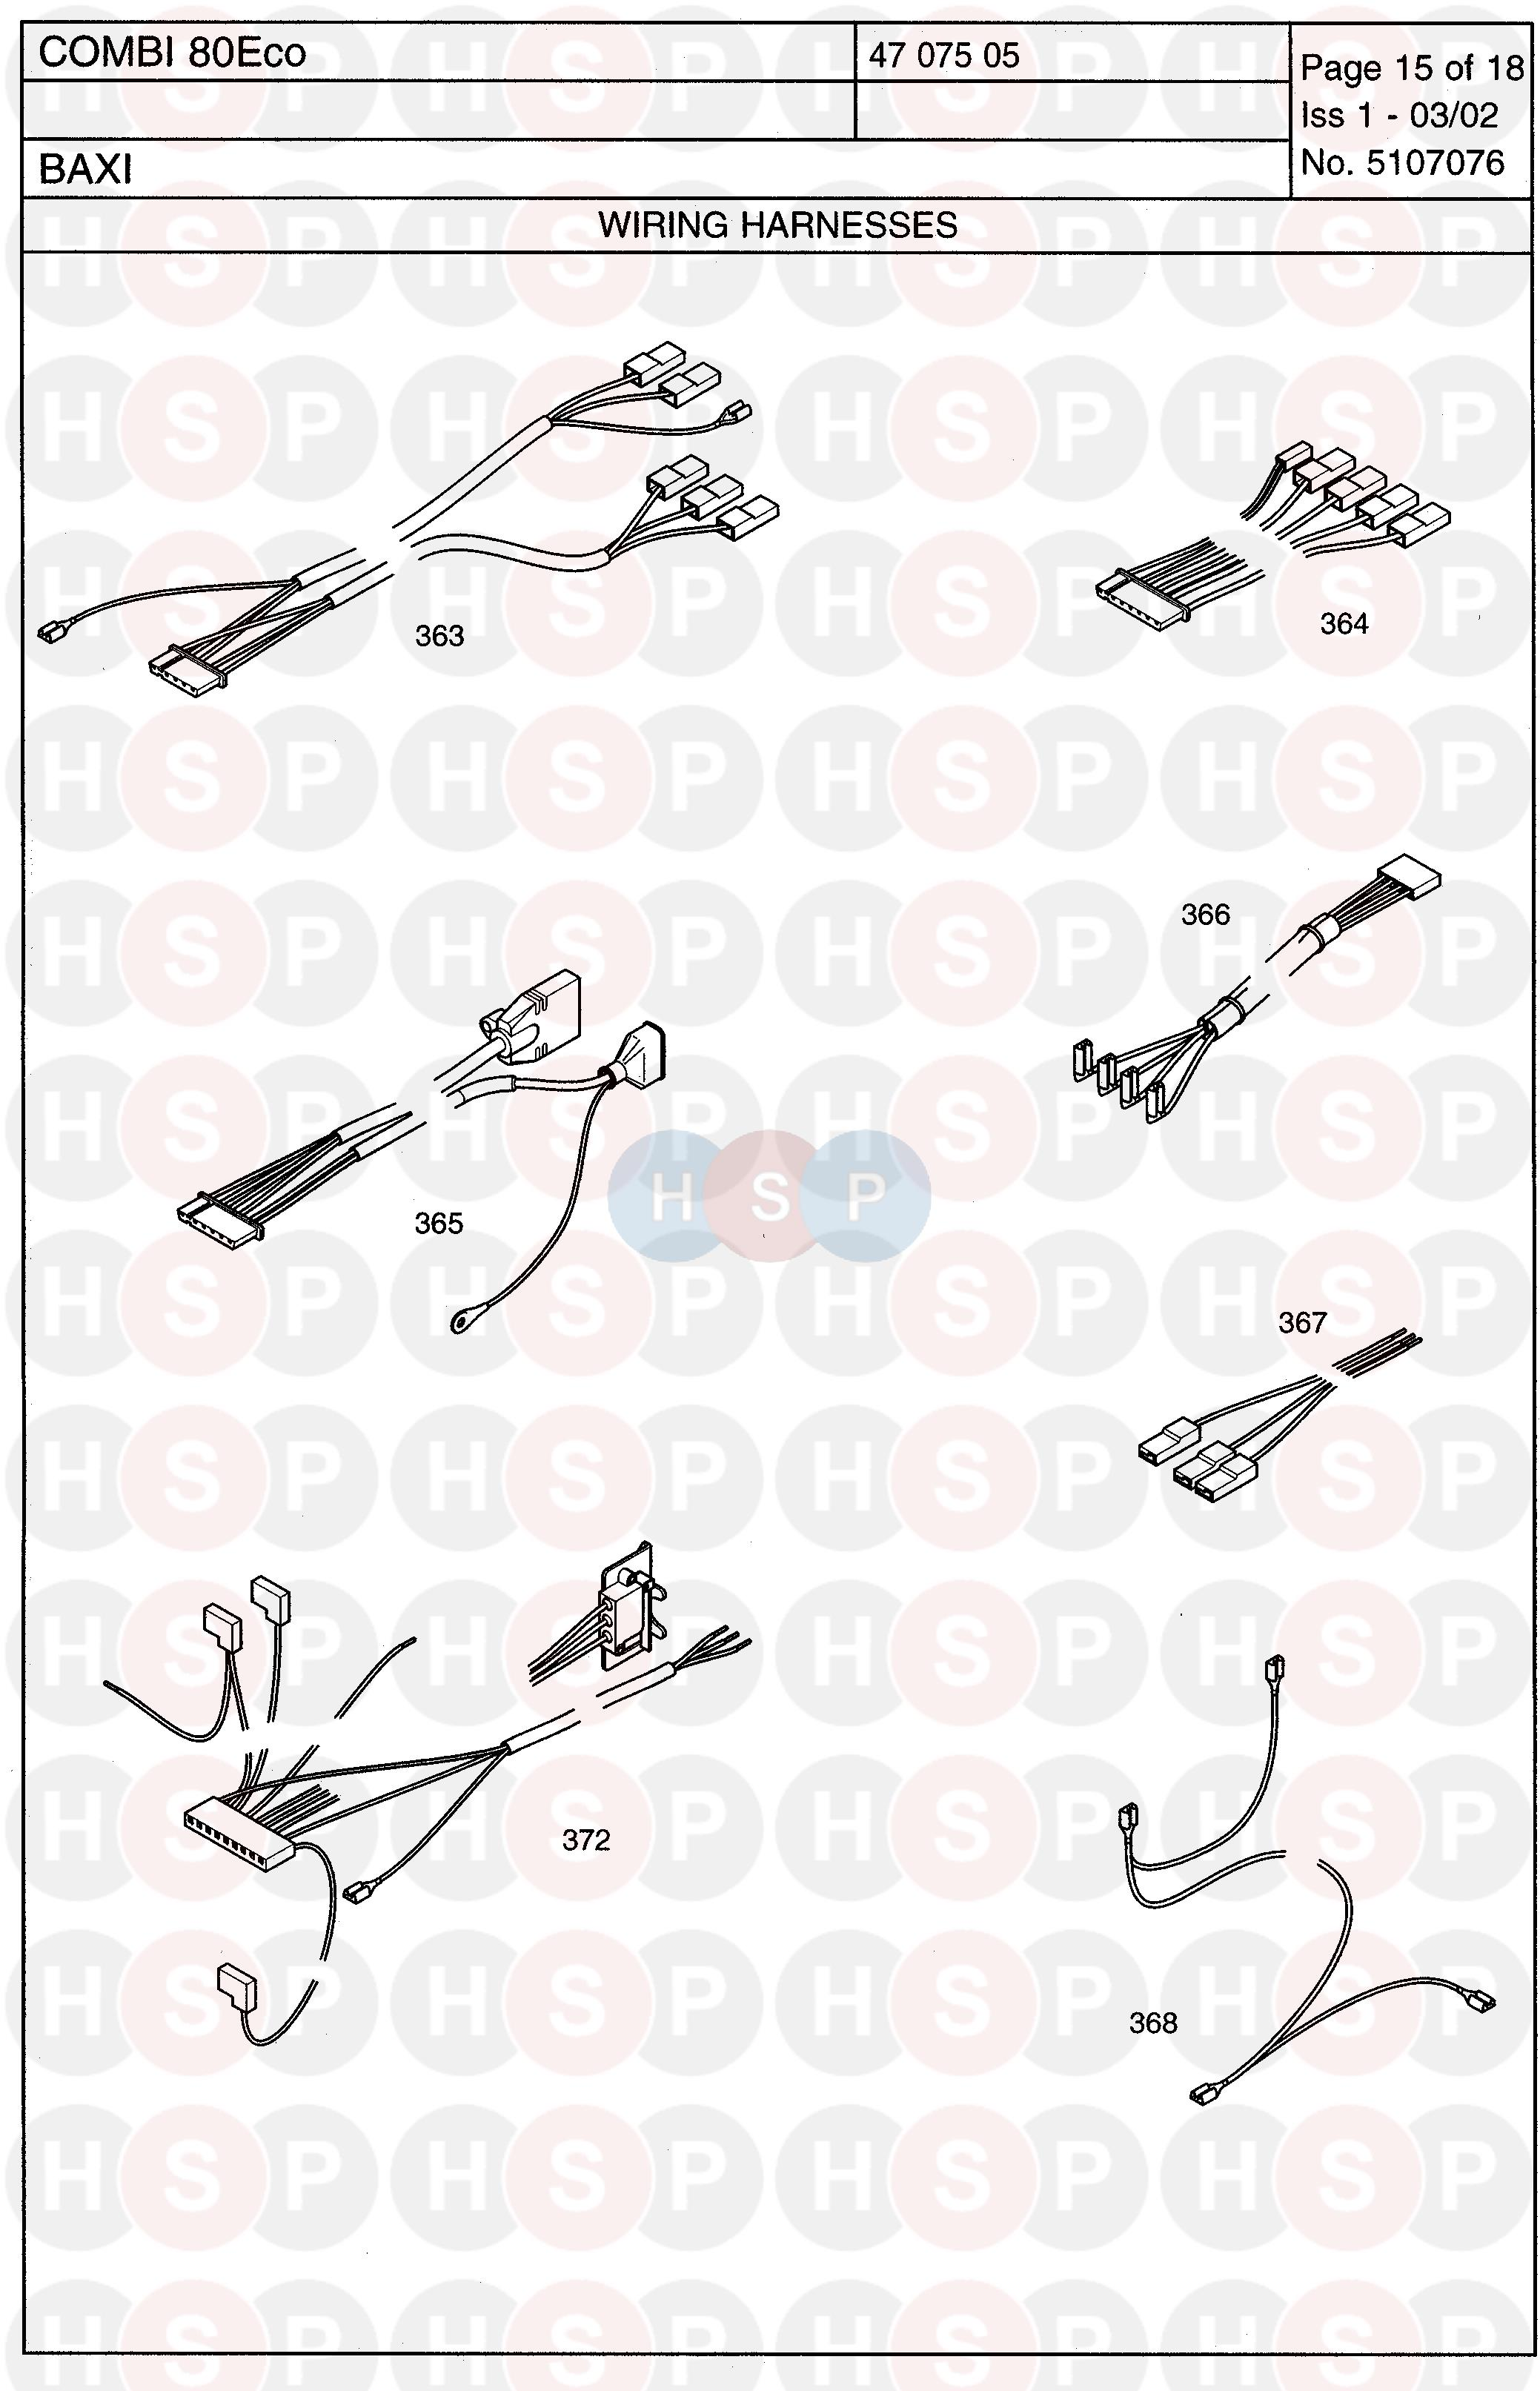 Baxi Combi 80 Eco Wiring Harness Diagram Heating Spare